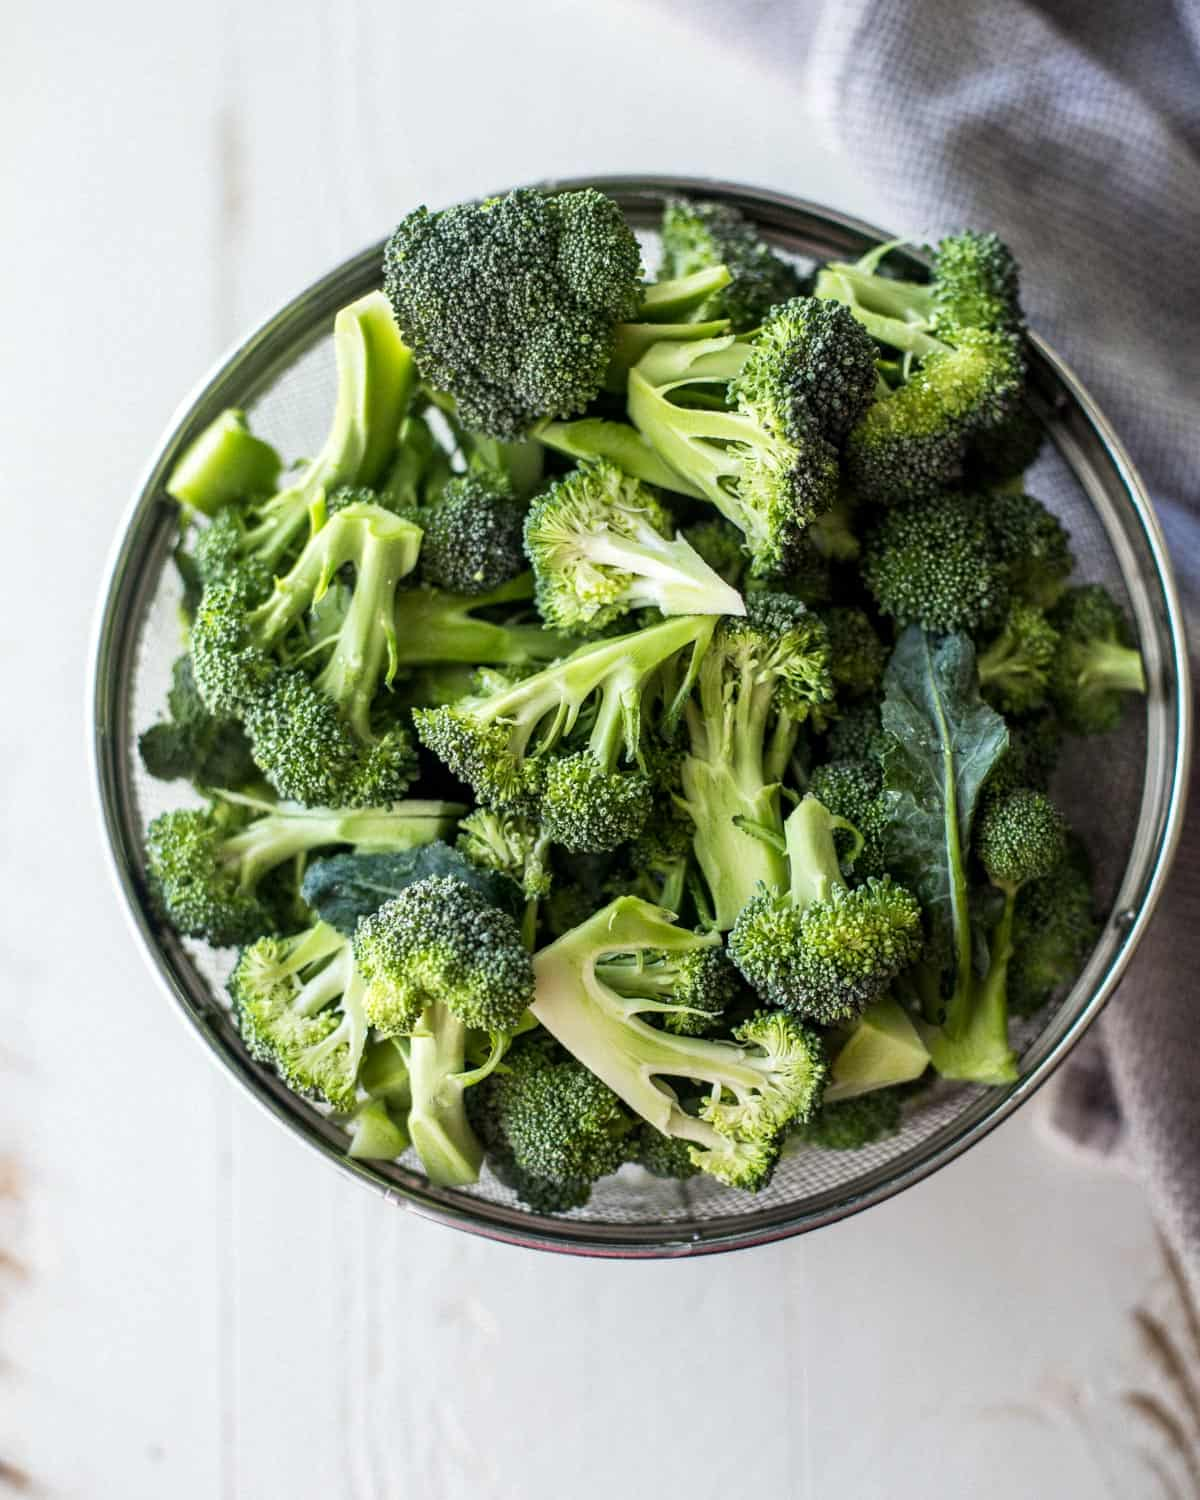 raw broccoli in a clear bowl